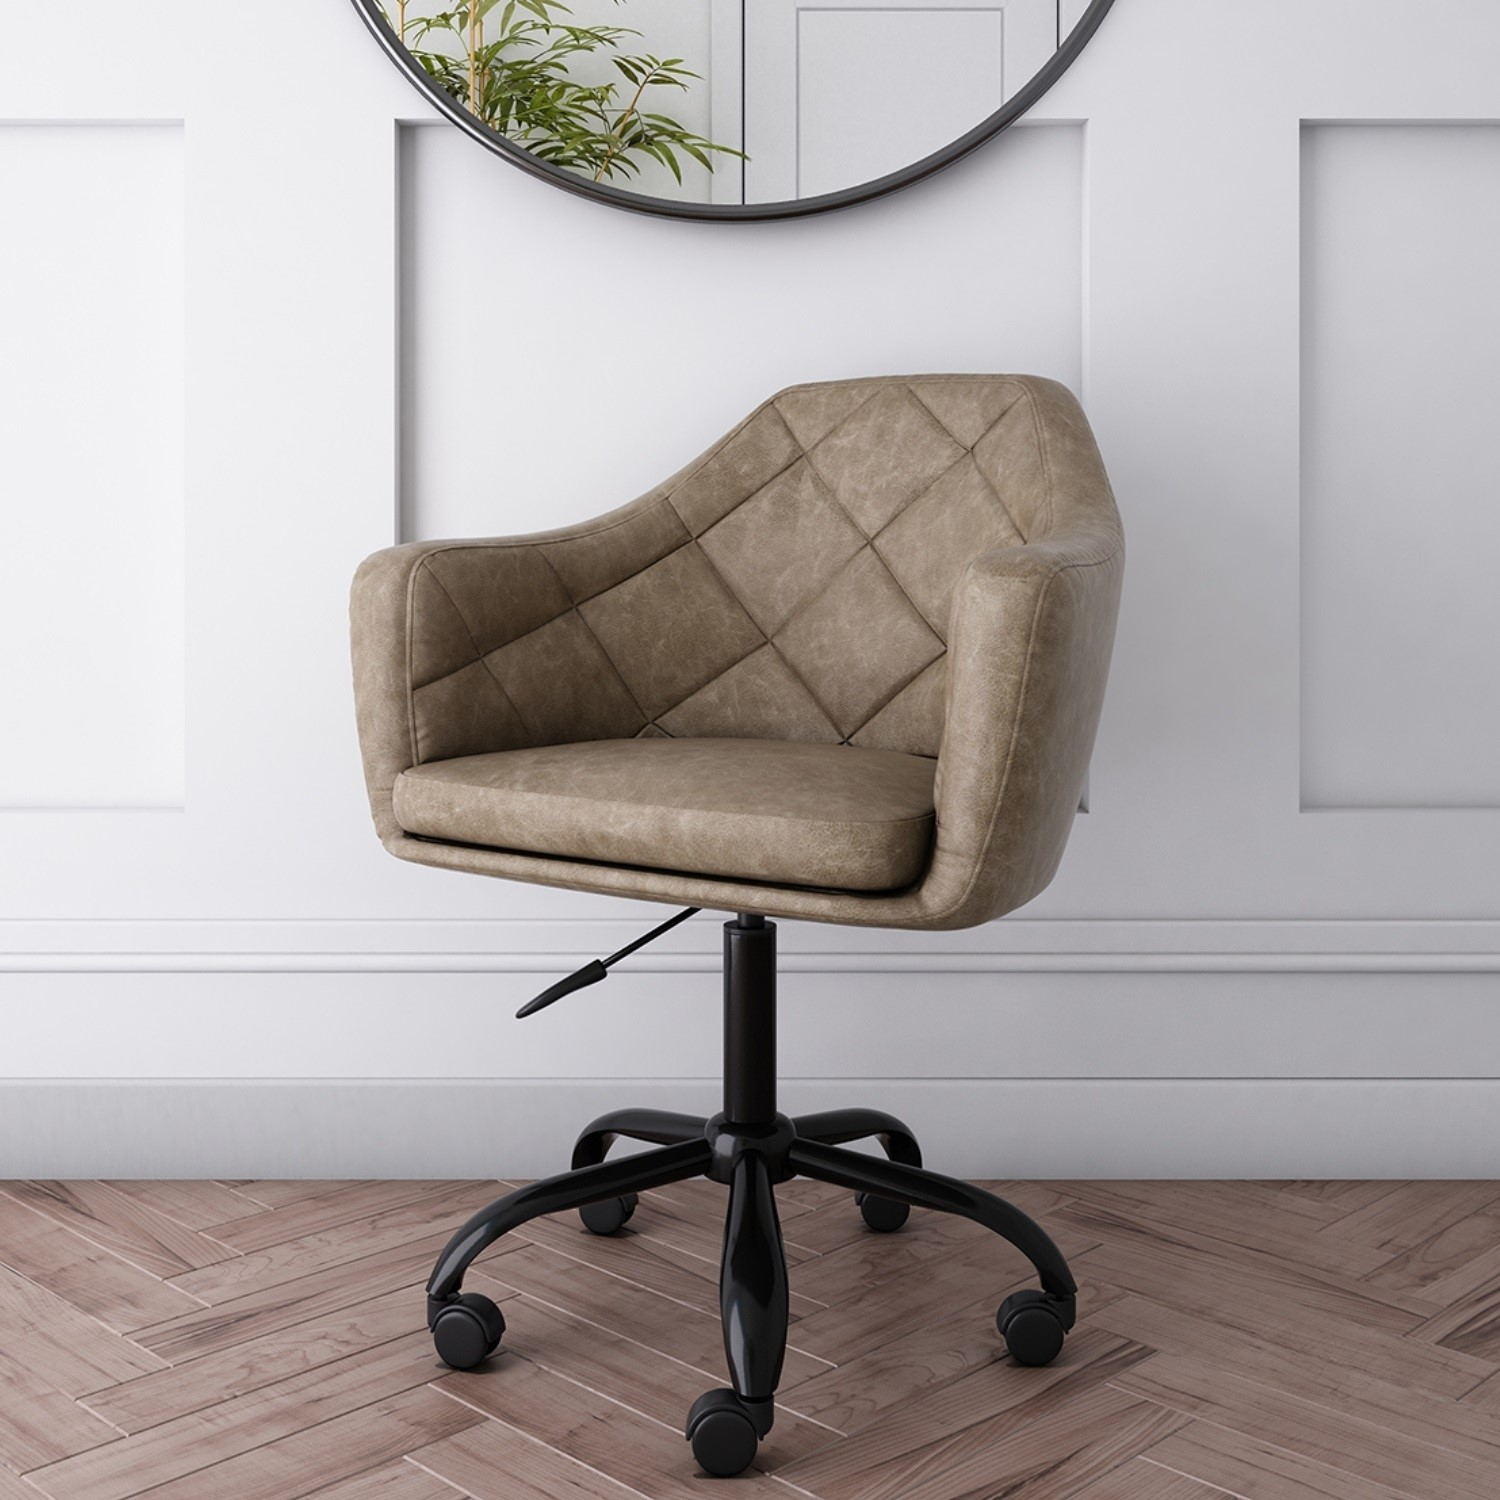 Beige Faux Leather Office Chair With Swivel Base Marley Furniture123